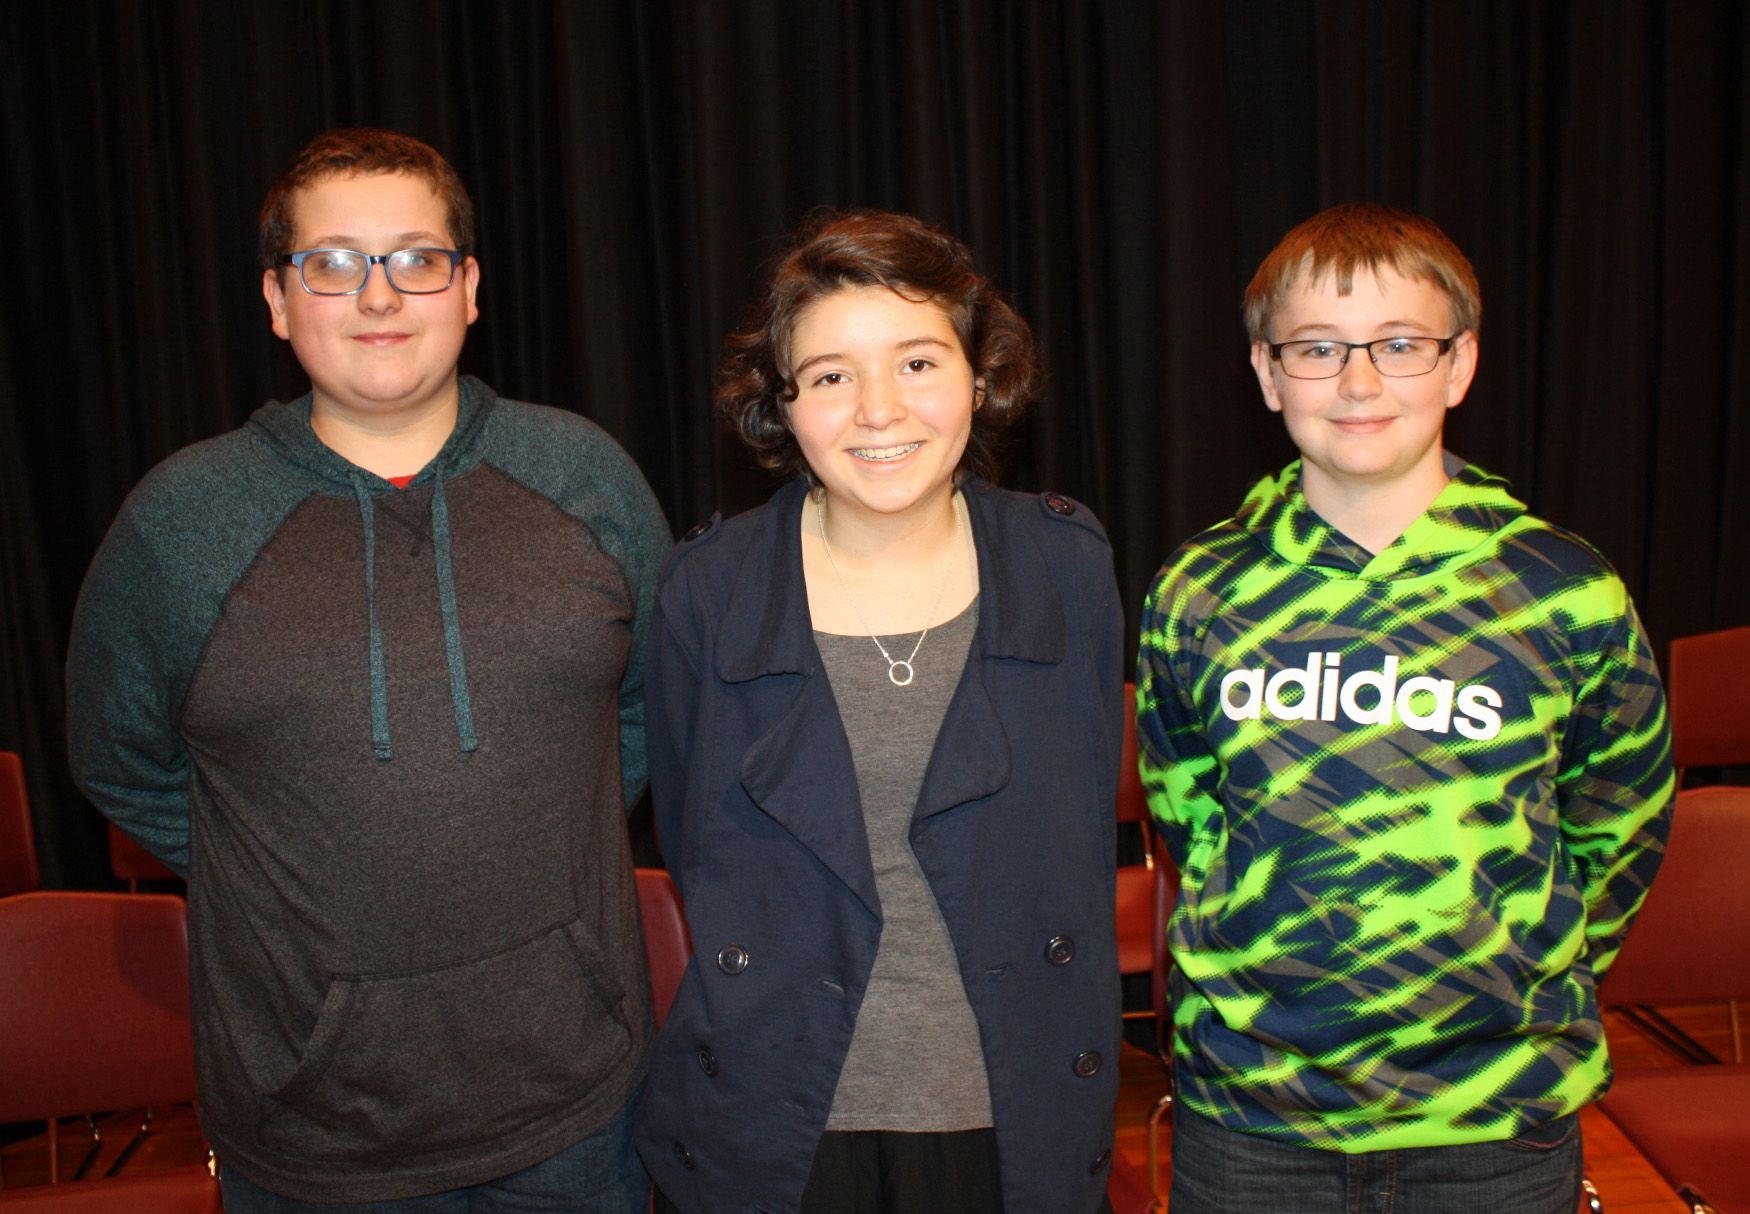 Robert Fowler/Byron-Bergen Grades 6-8 and Buffalo Evening News Spelling Bee (l-r) runner-up Garrett Swinter, Bee champion Elli Schelemanow and runner-up Joshua Swapceinski.